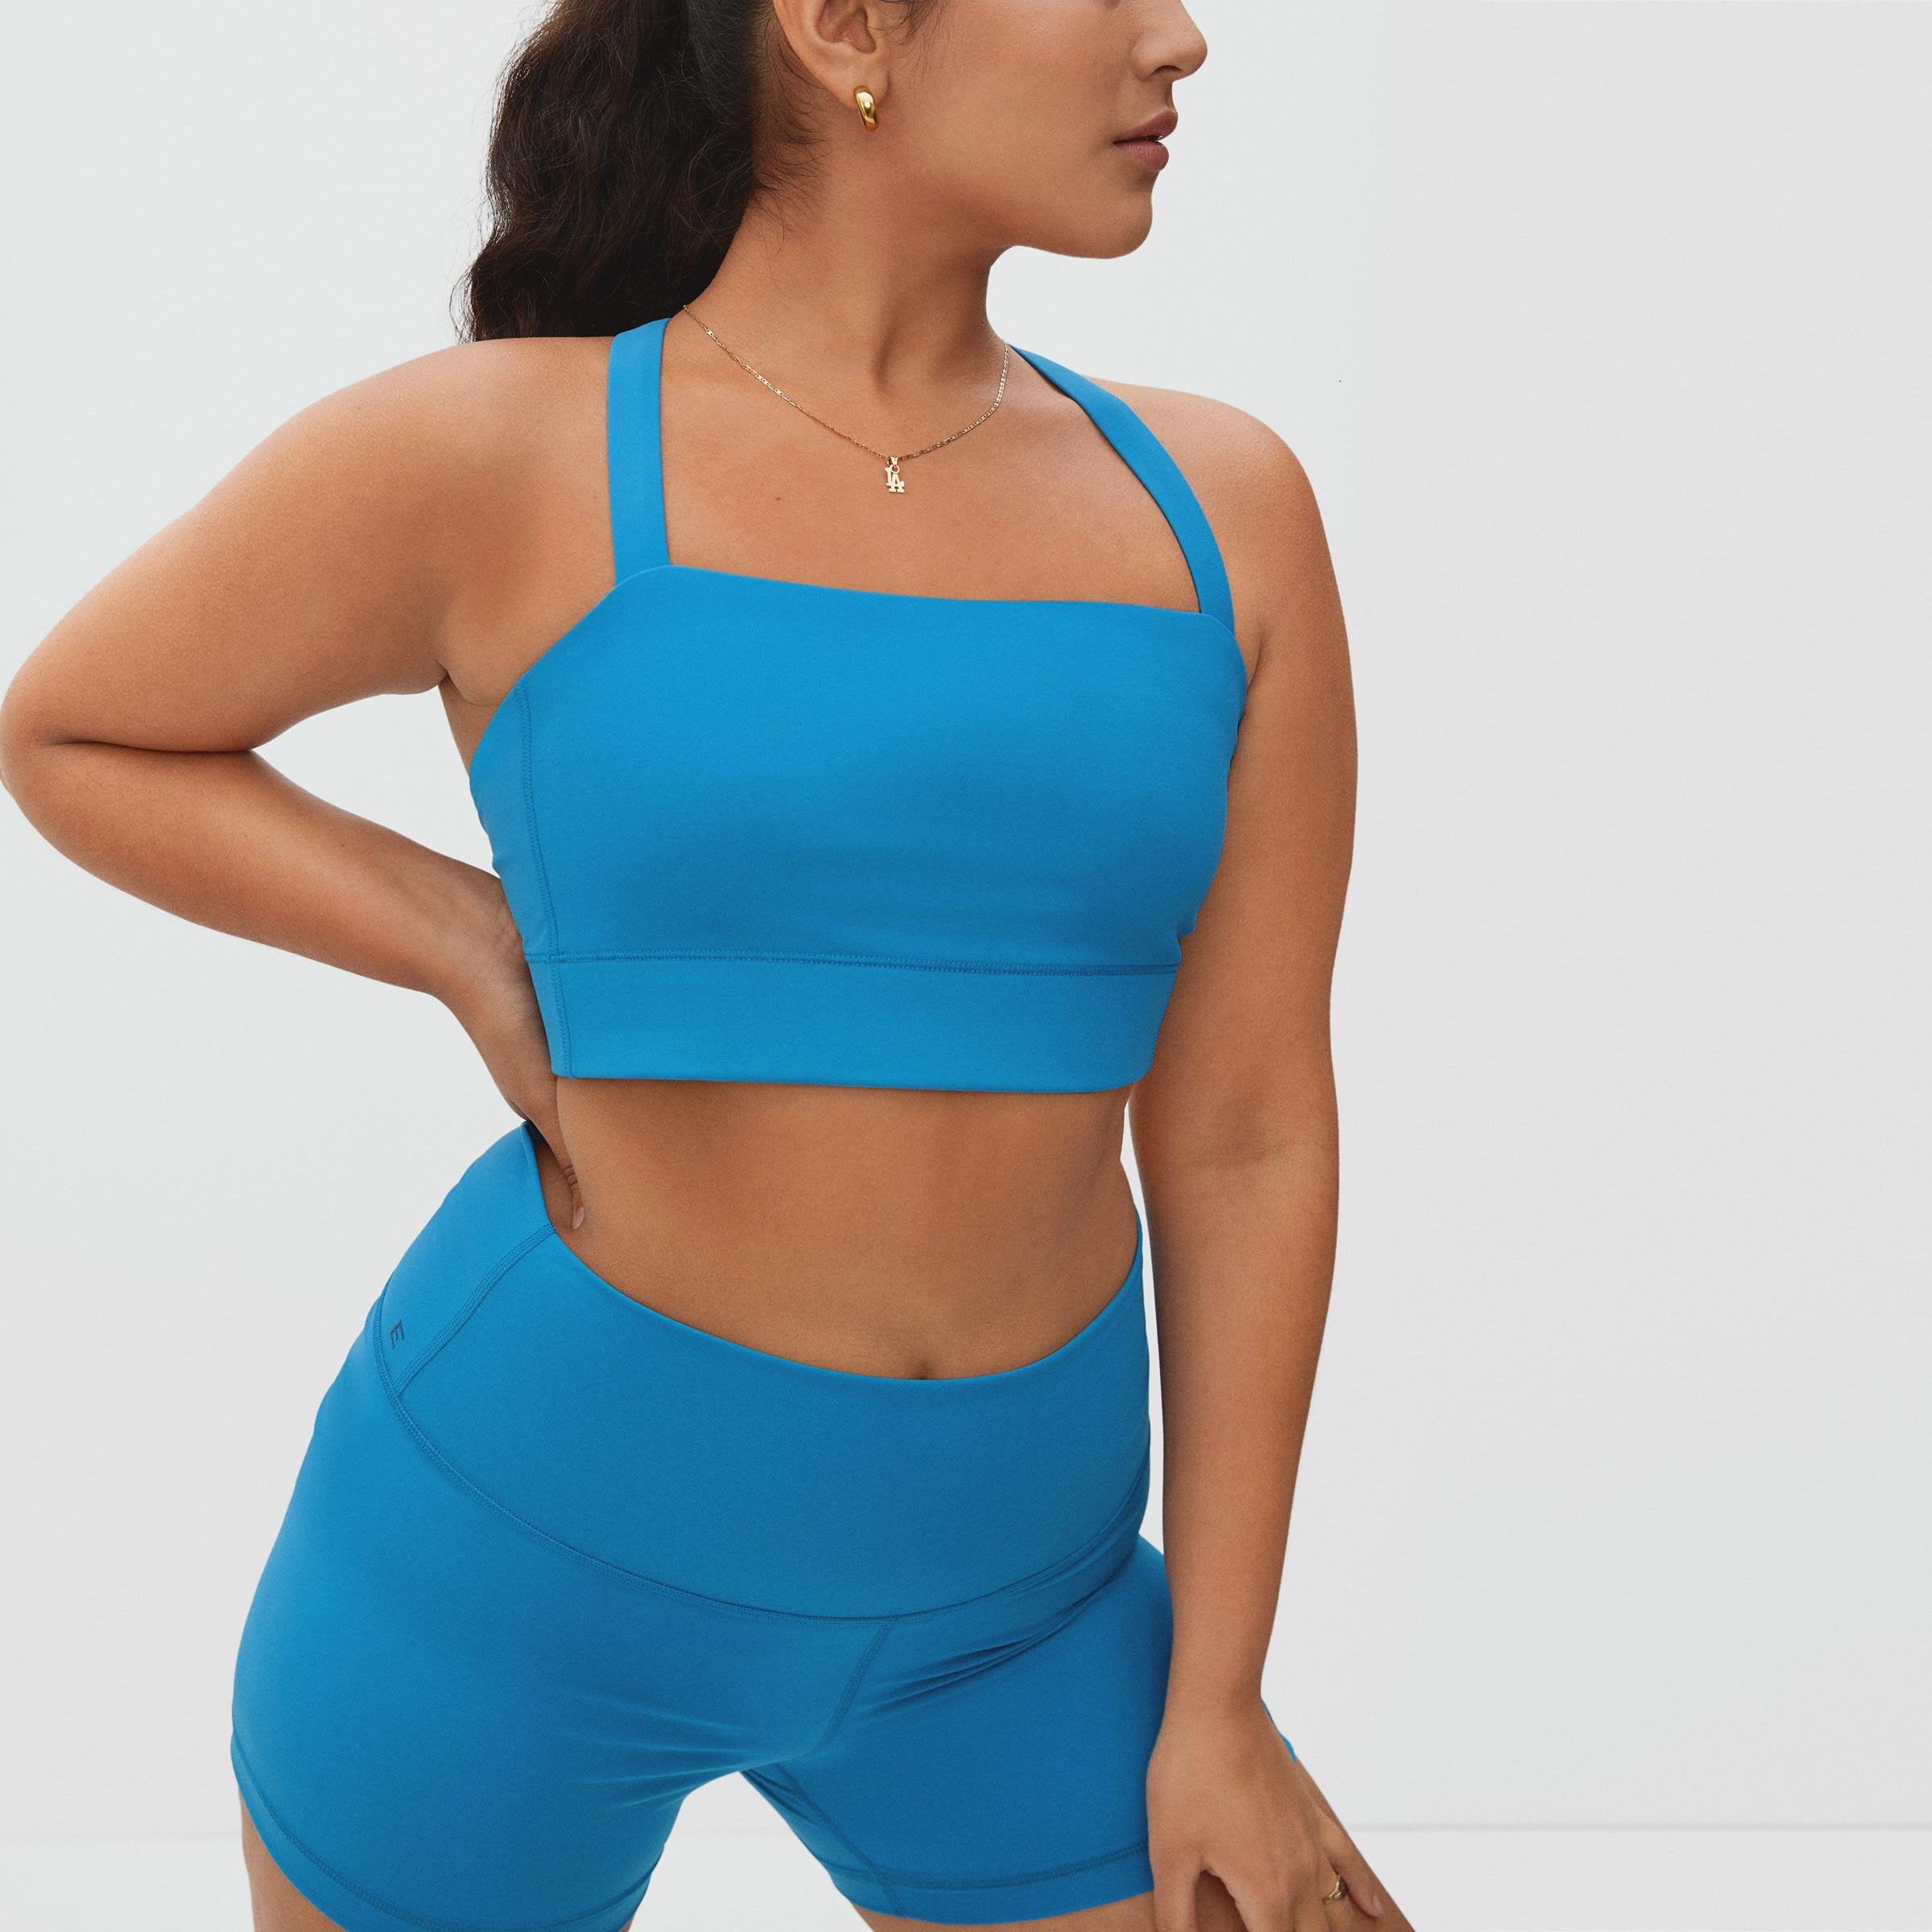 The Perform Cropped Top